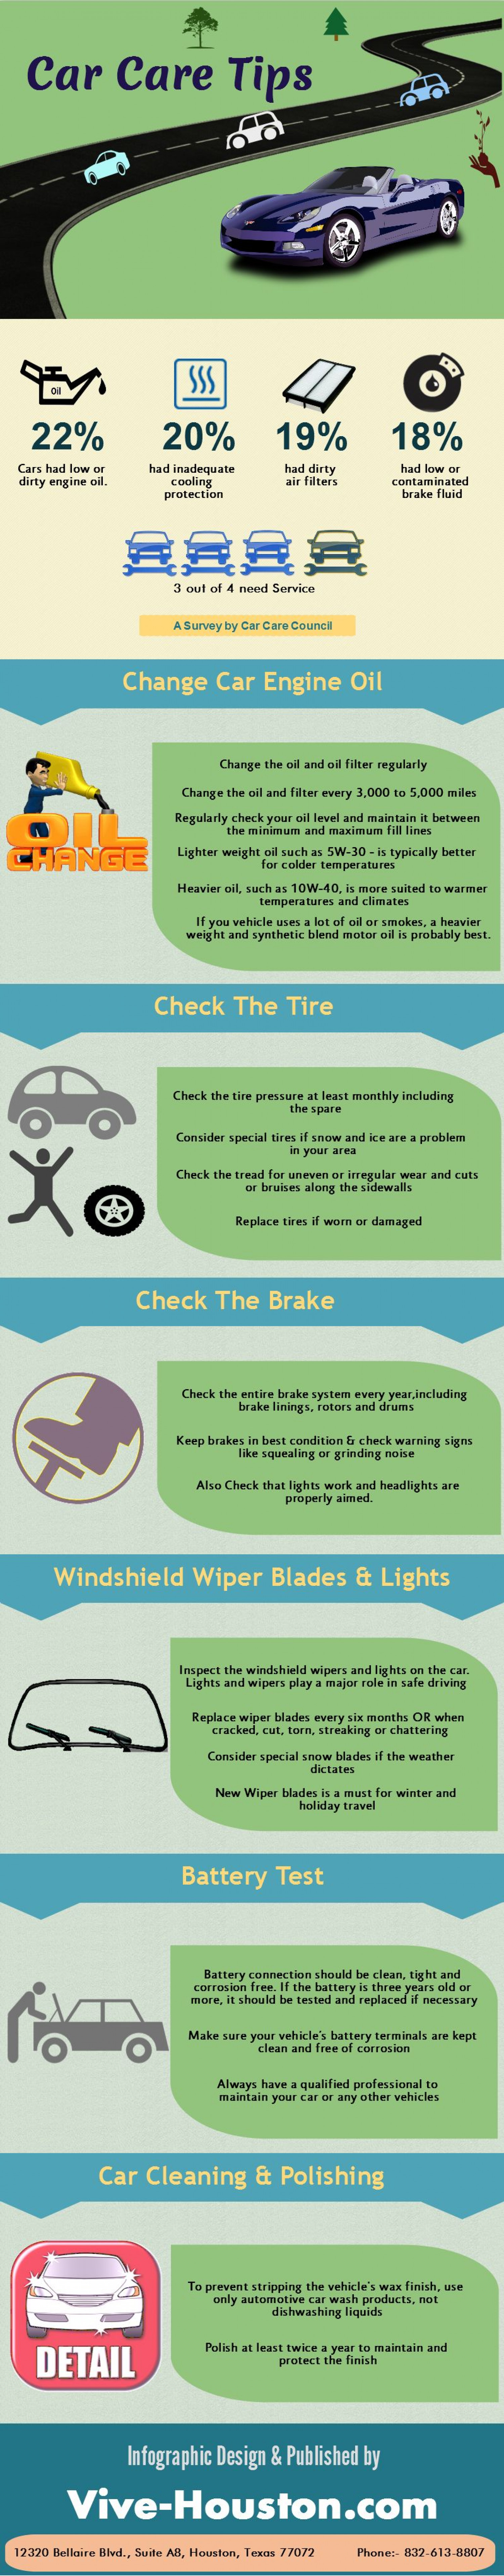 Car Care and Maintainance Tips Infographic